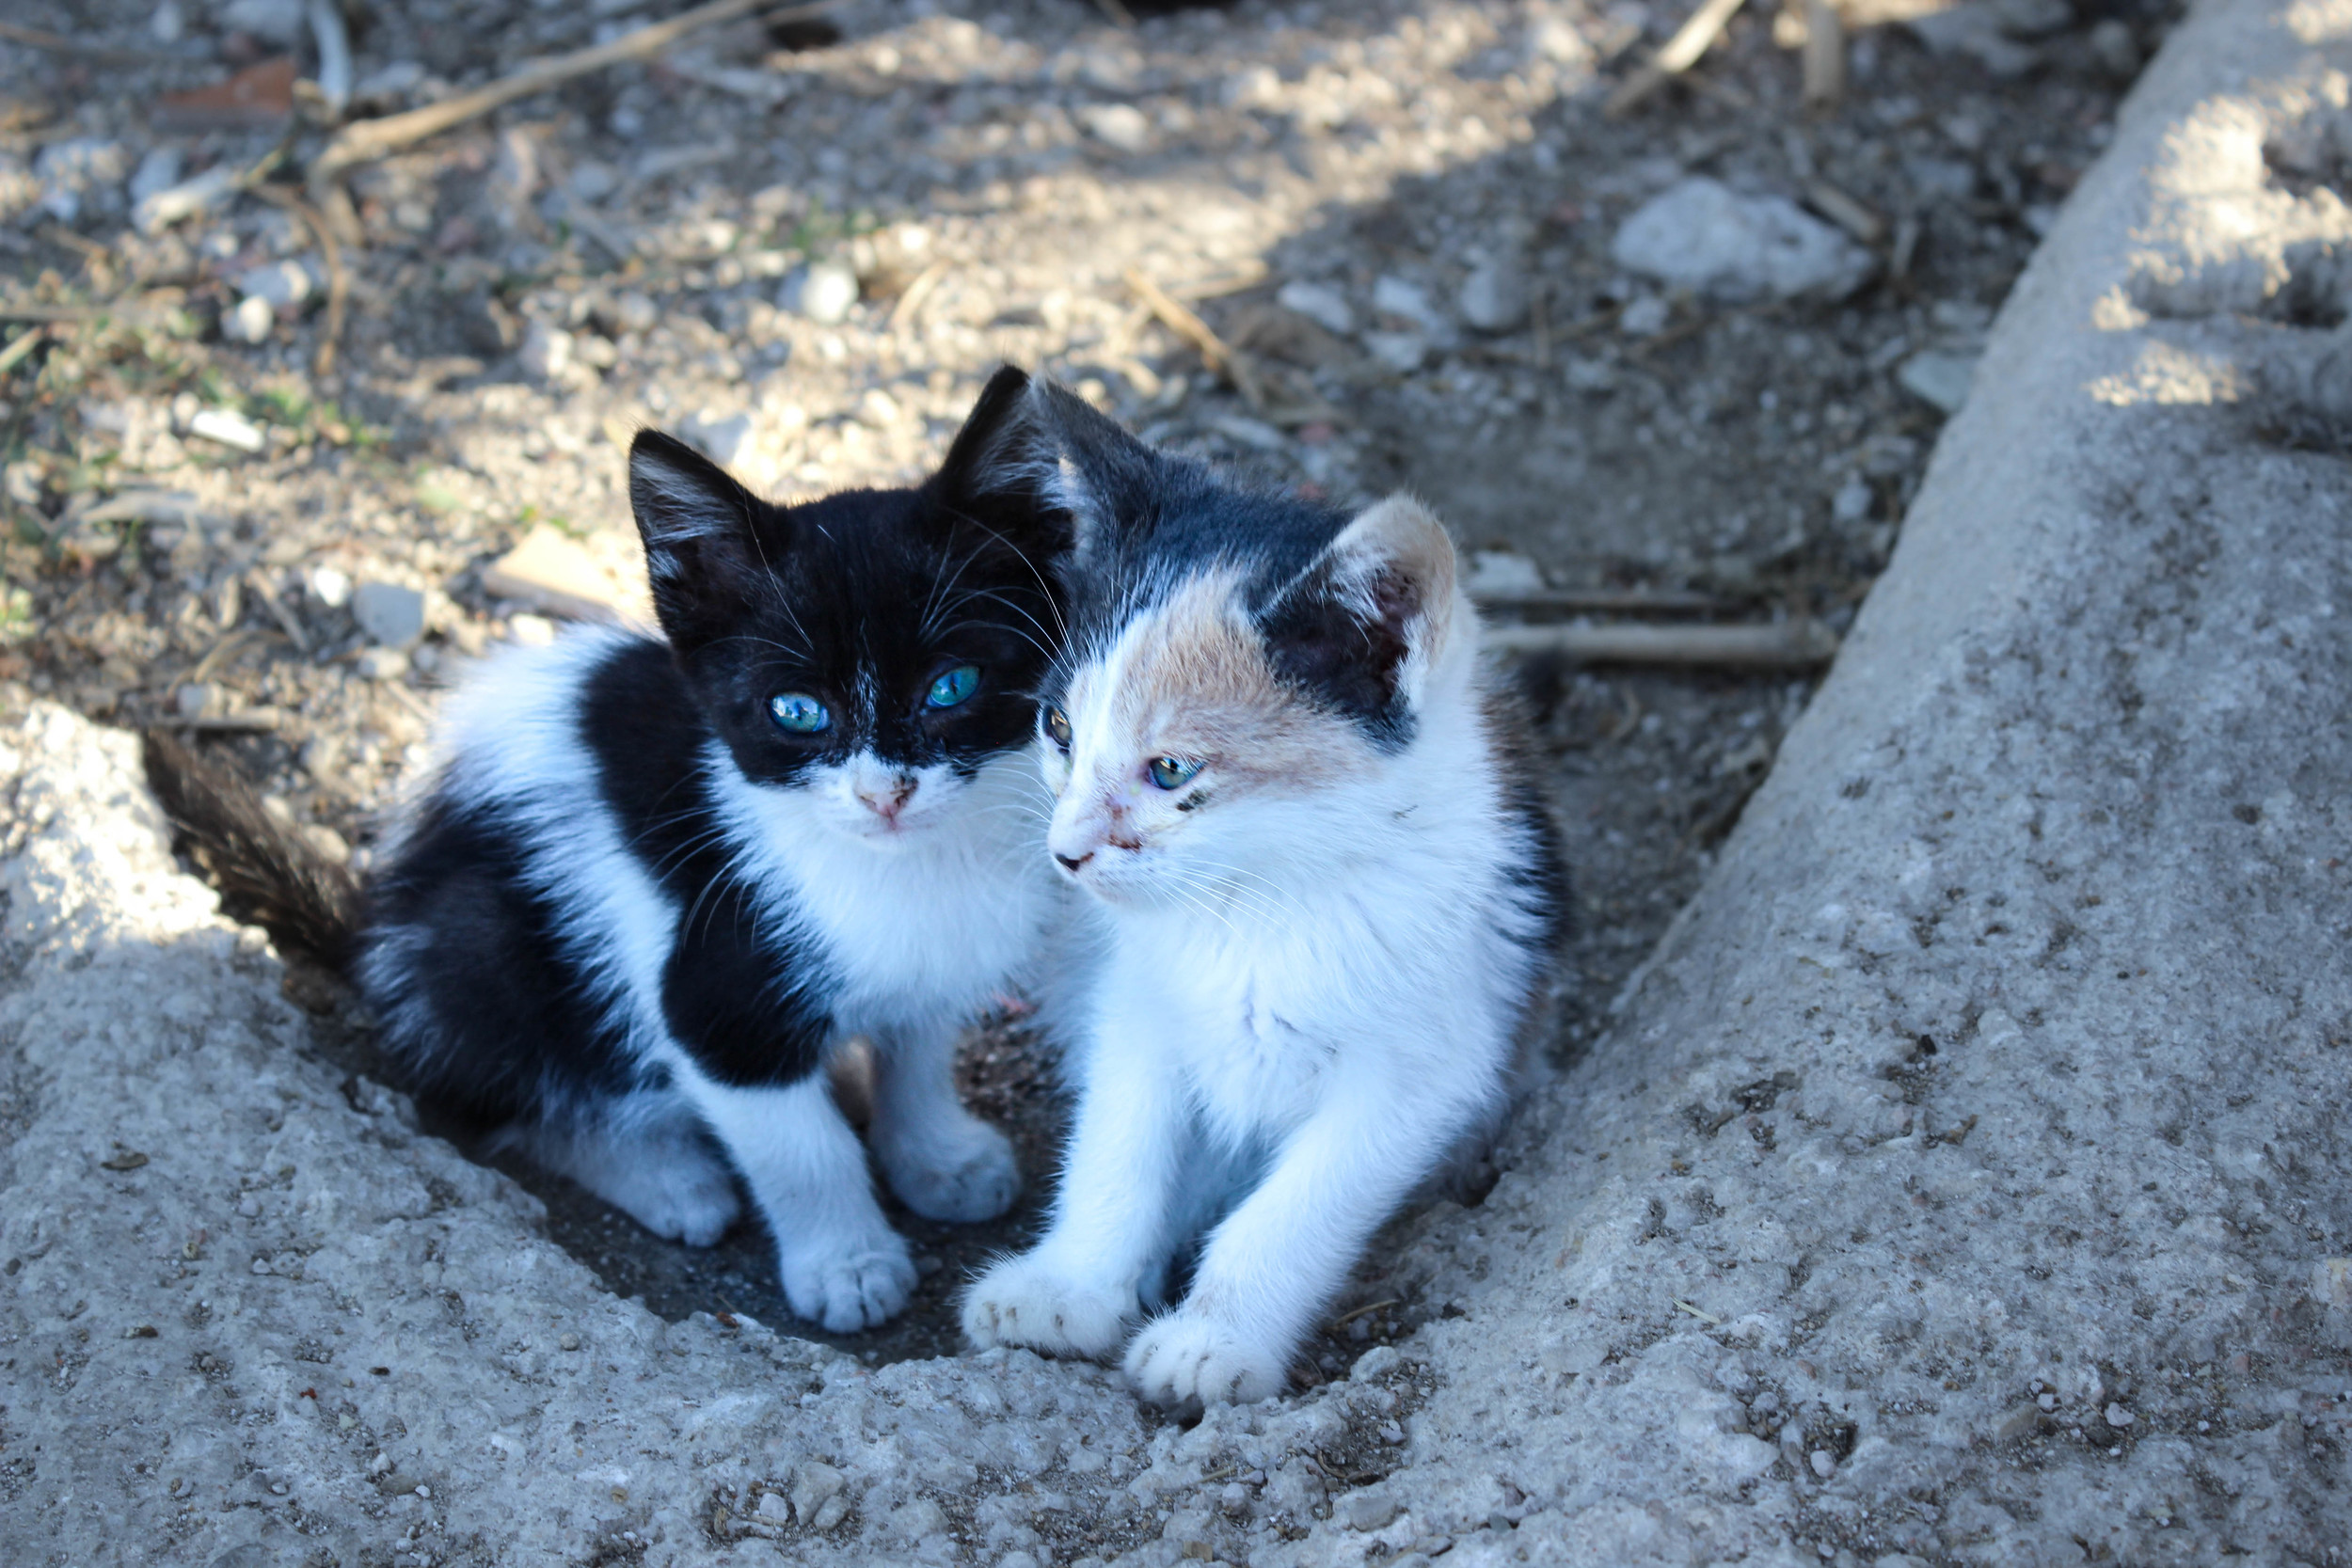 Found cute kitten's on our way to Kiki's as well!